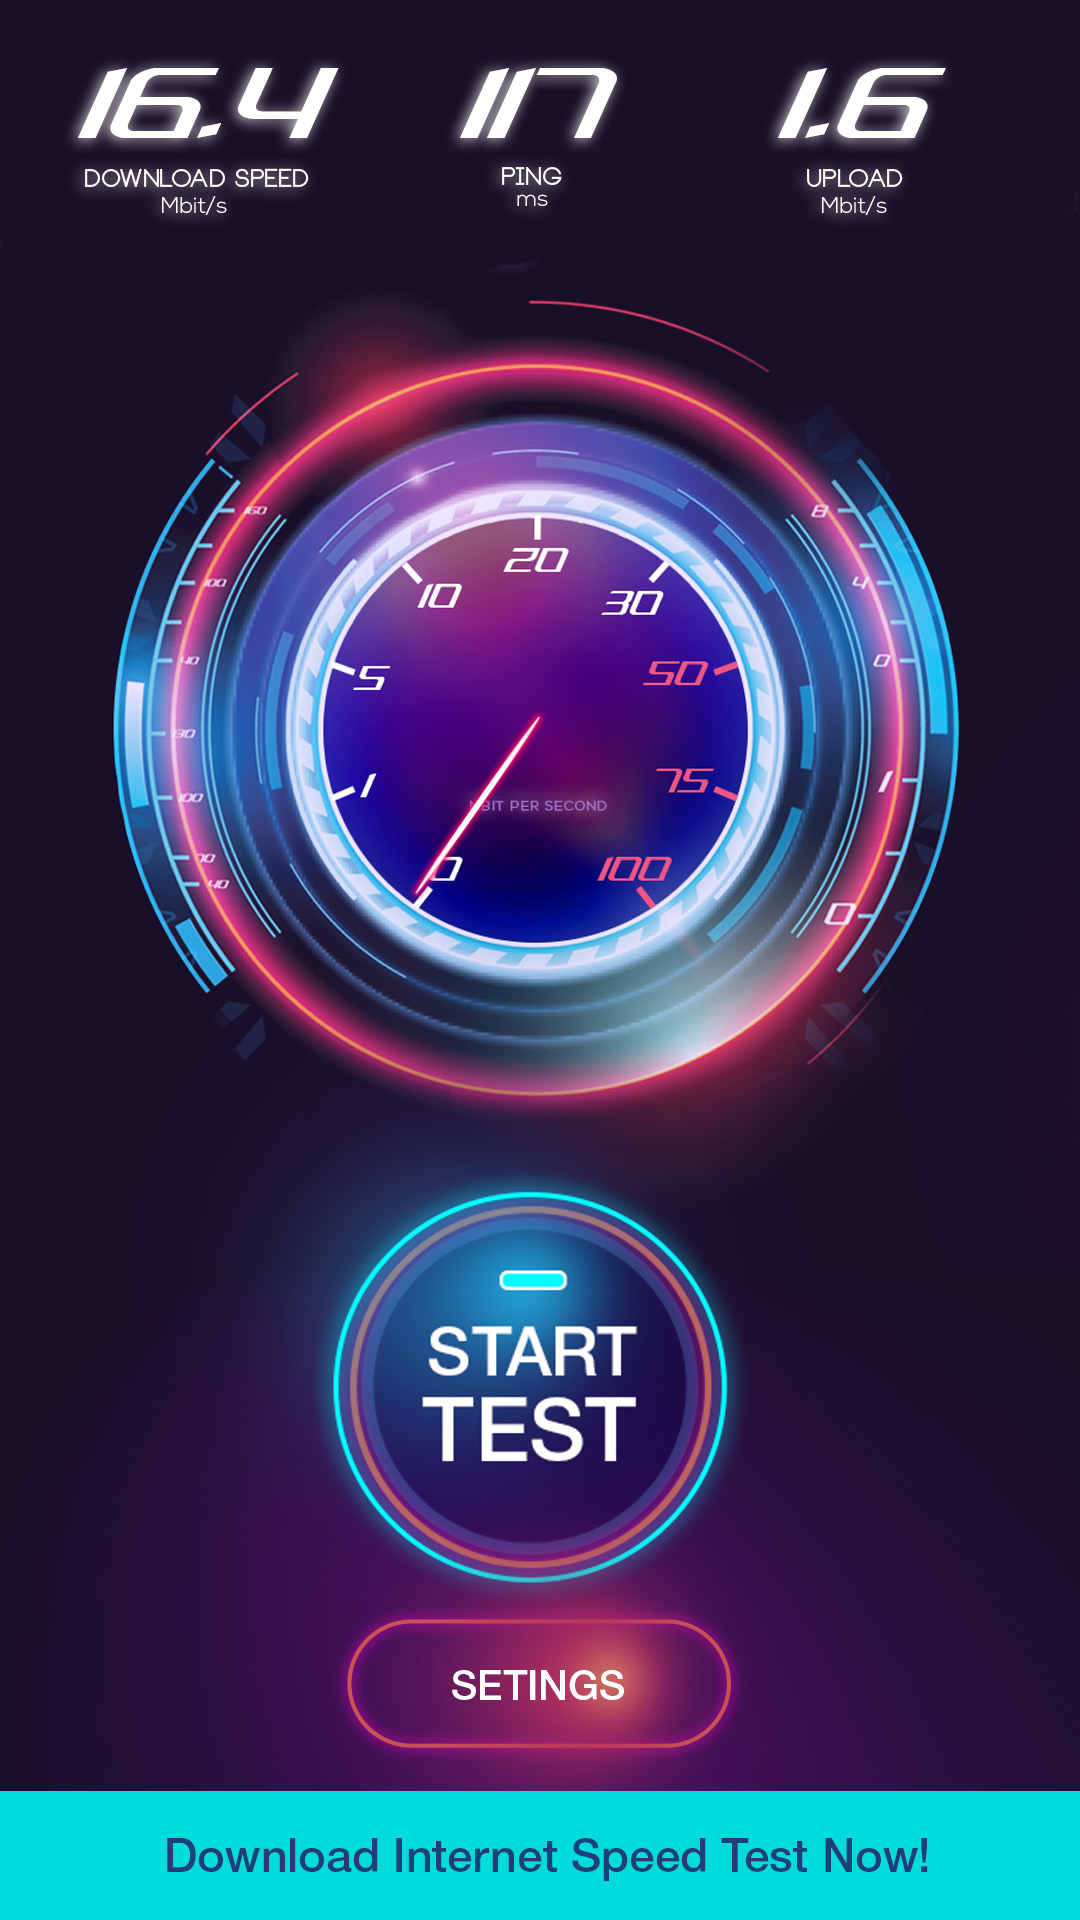 Internet Speed Test: Troubleshoot Your Internet Connection Problems